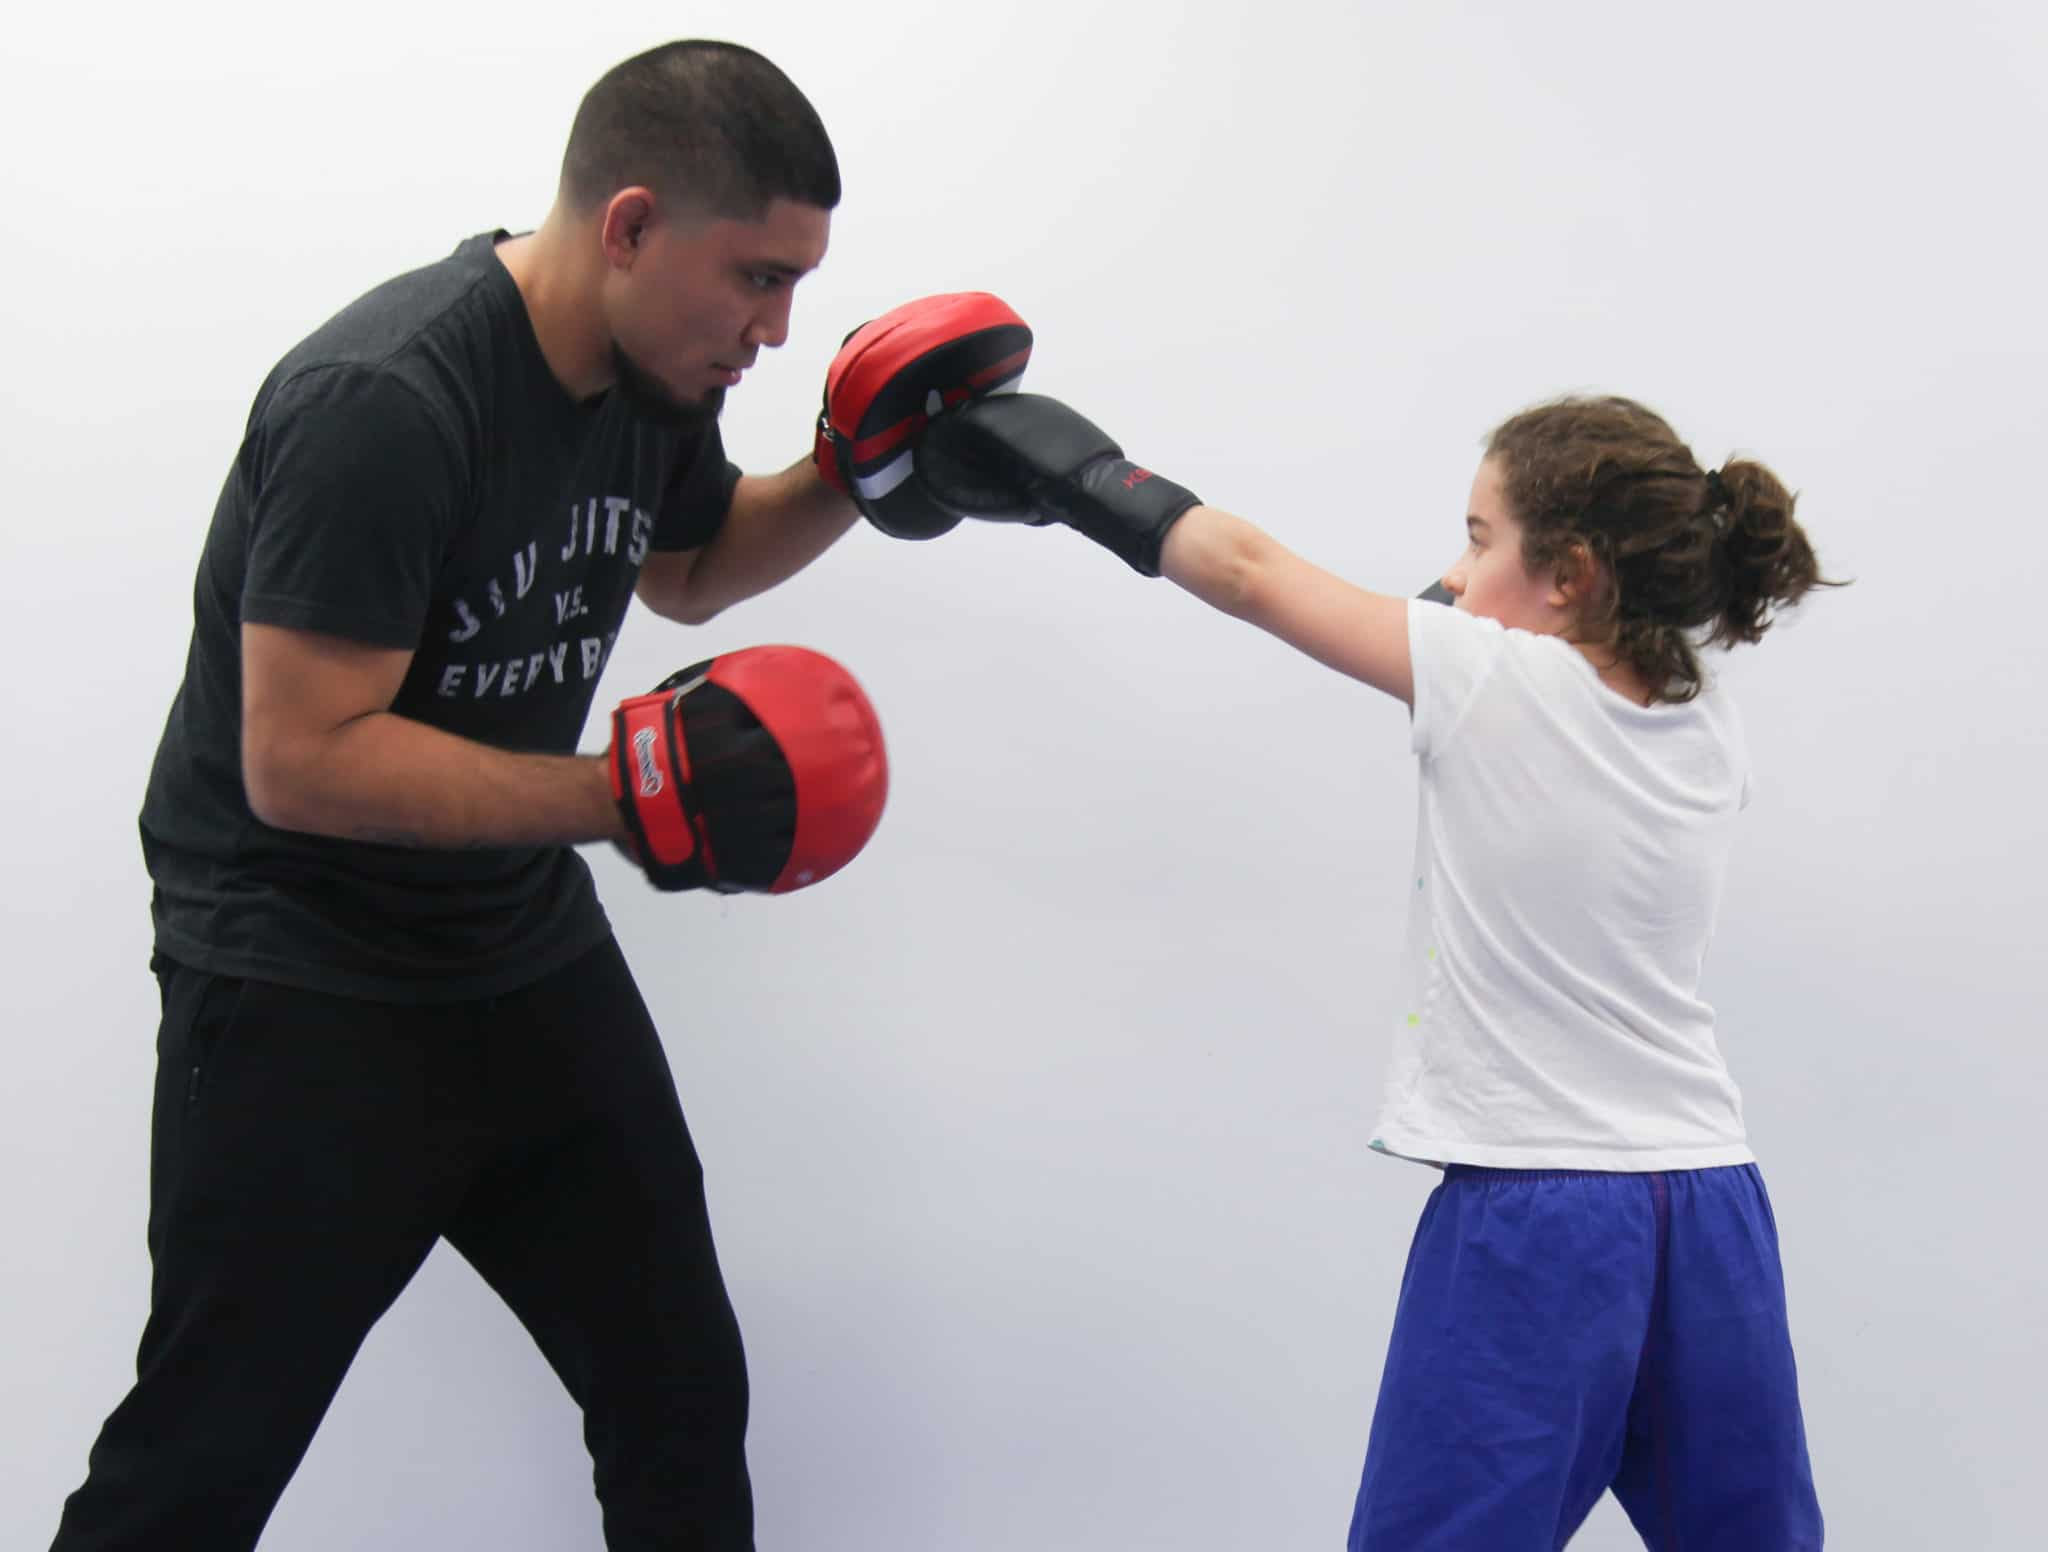 Teacher and Student Kickboxing at Lifestyle MMA